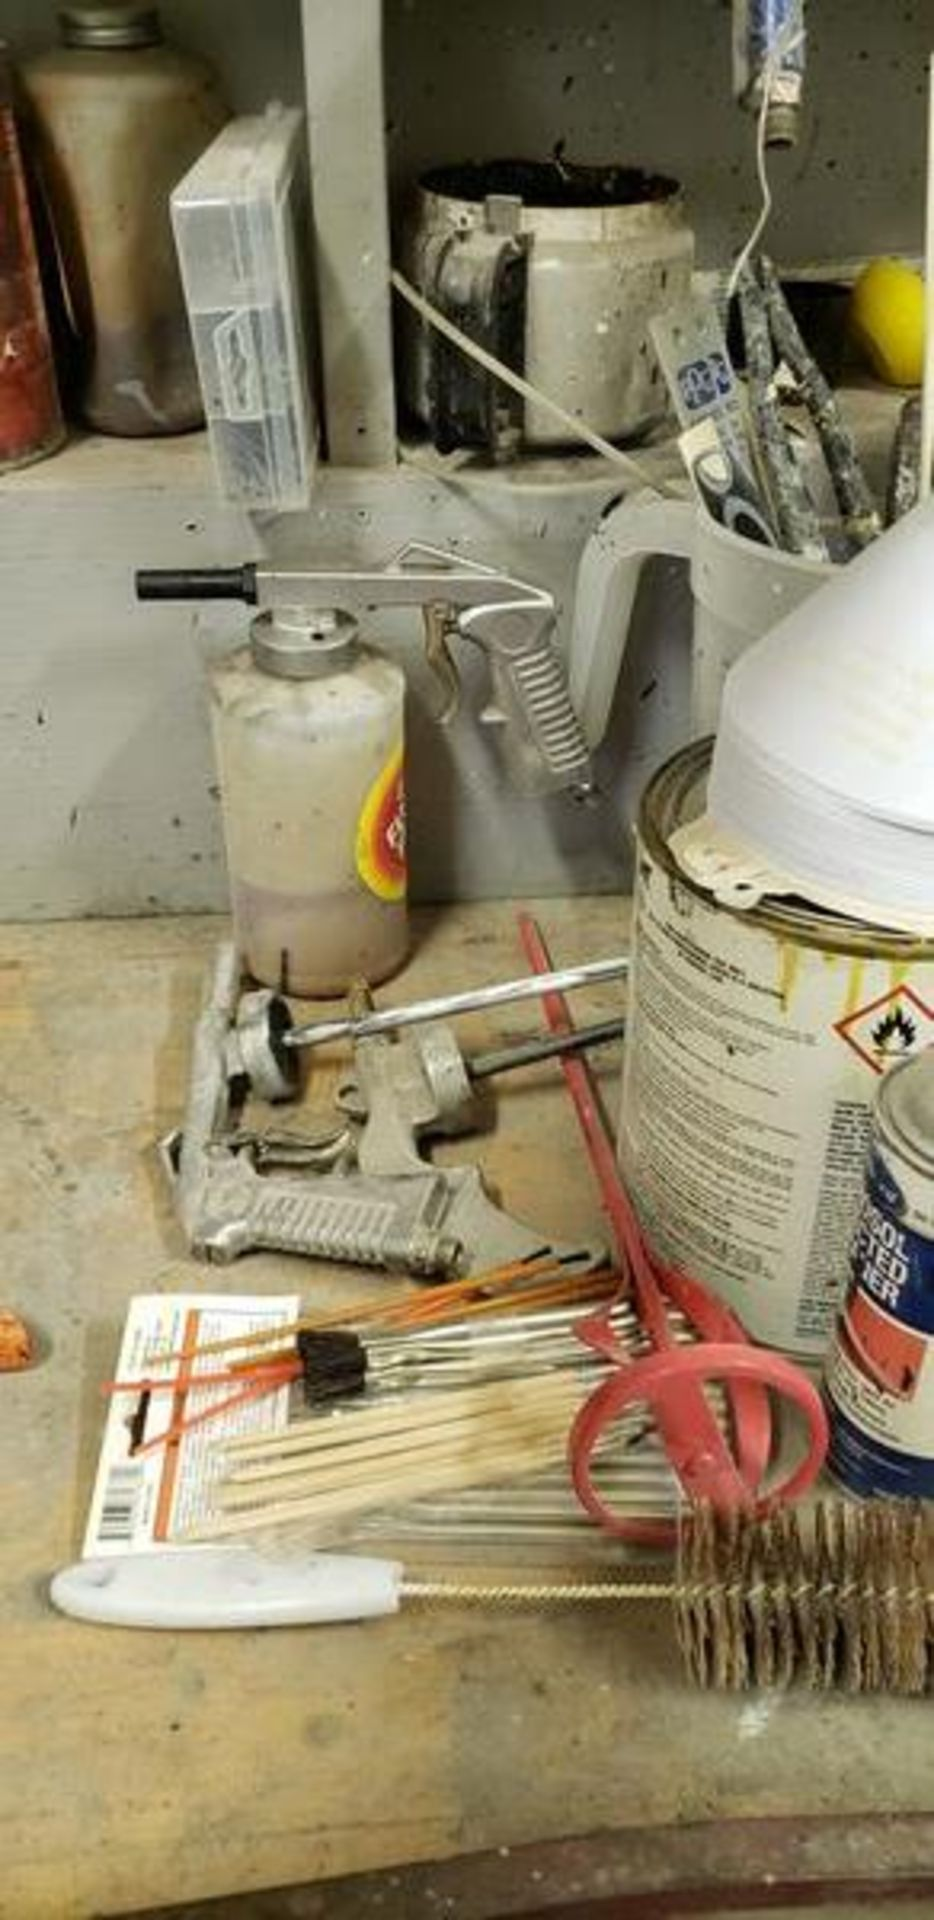 LOT OF PAINTING ITEMS ON LEFT TABLE, TOP AND BACK SHELF (TAGGED SPRAY GUNS AND OTHER TAGGED ITEMS AR - Image 5 of 12